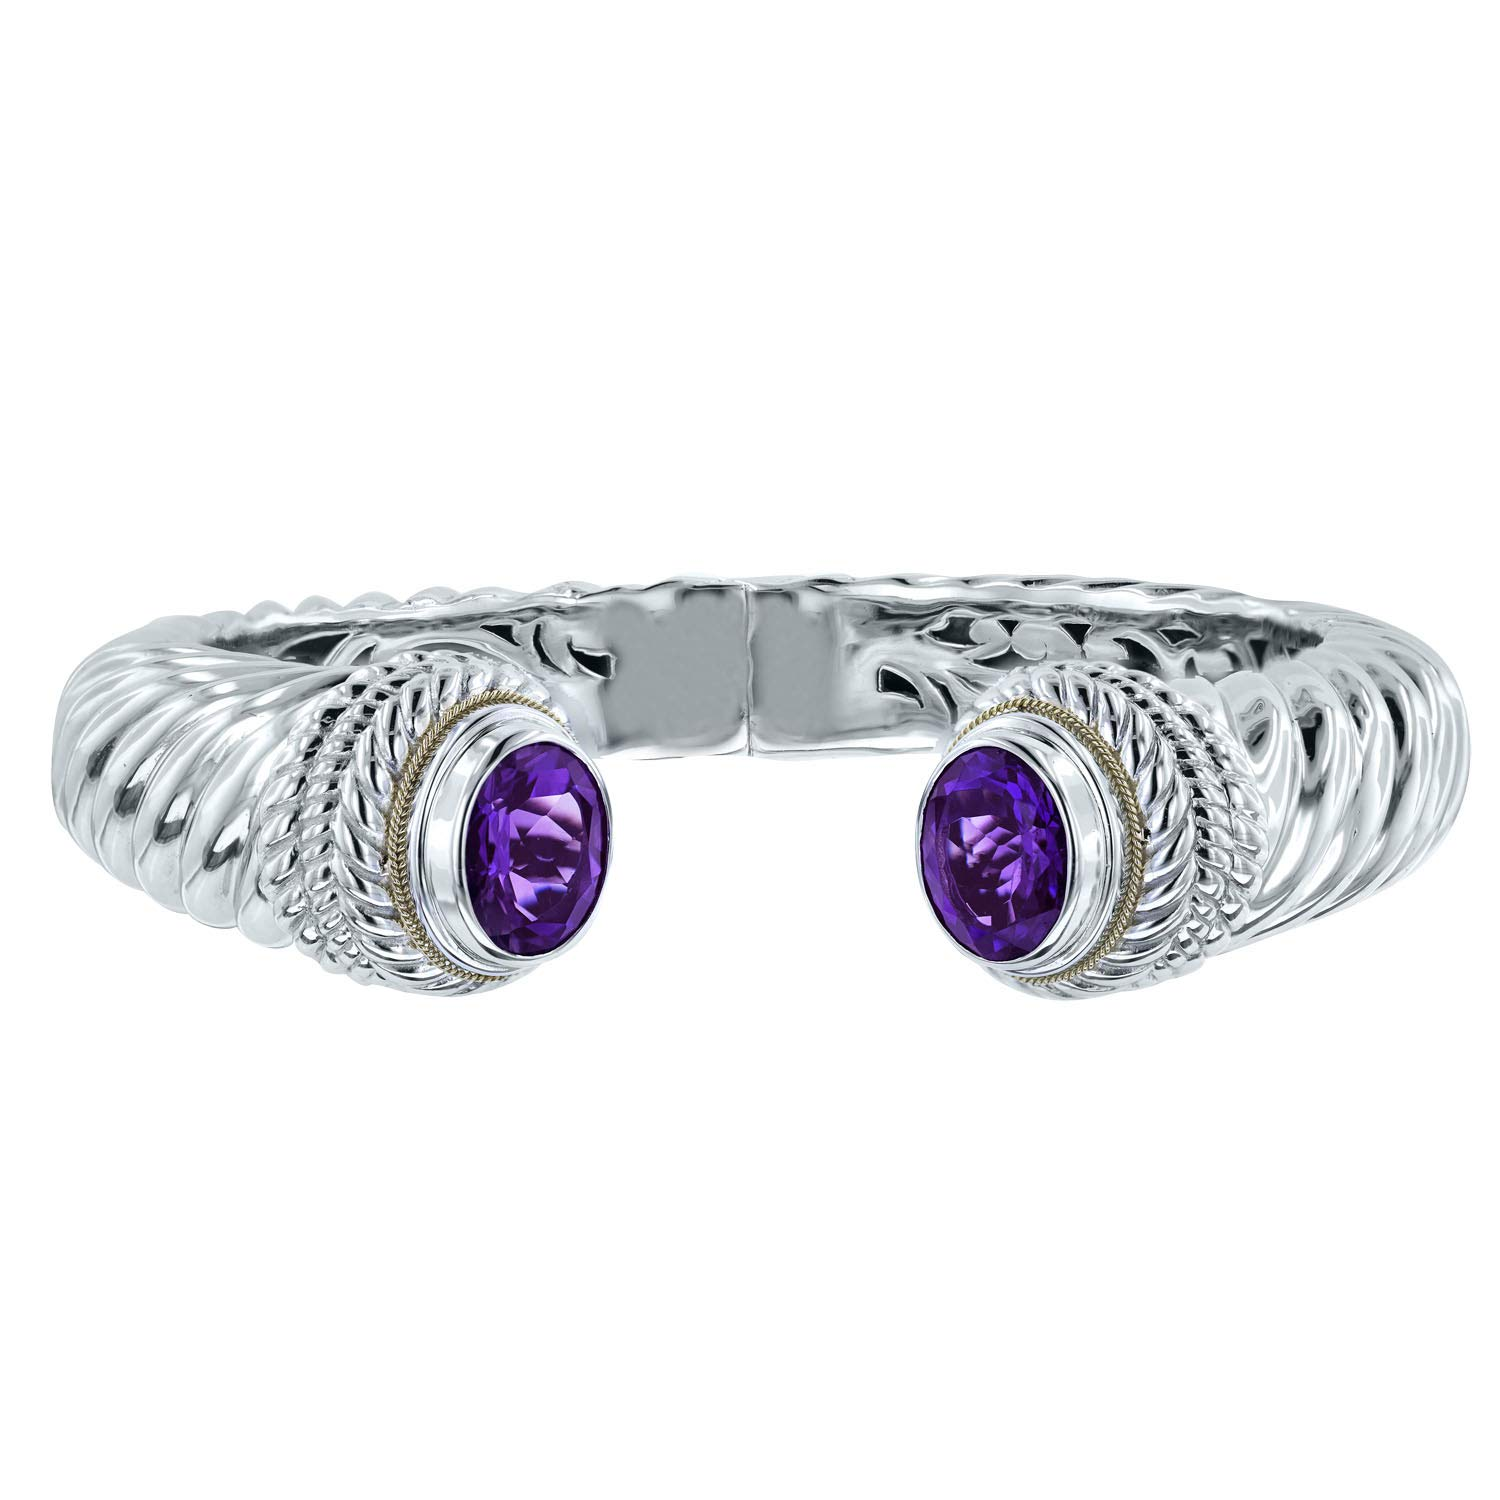 Robert Manse Designs Bali Romanse Gemstone Sterling Silver and 18K Gold Hinged Cuff Bracelet (Amethyst)